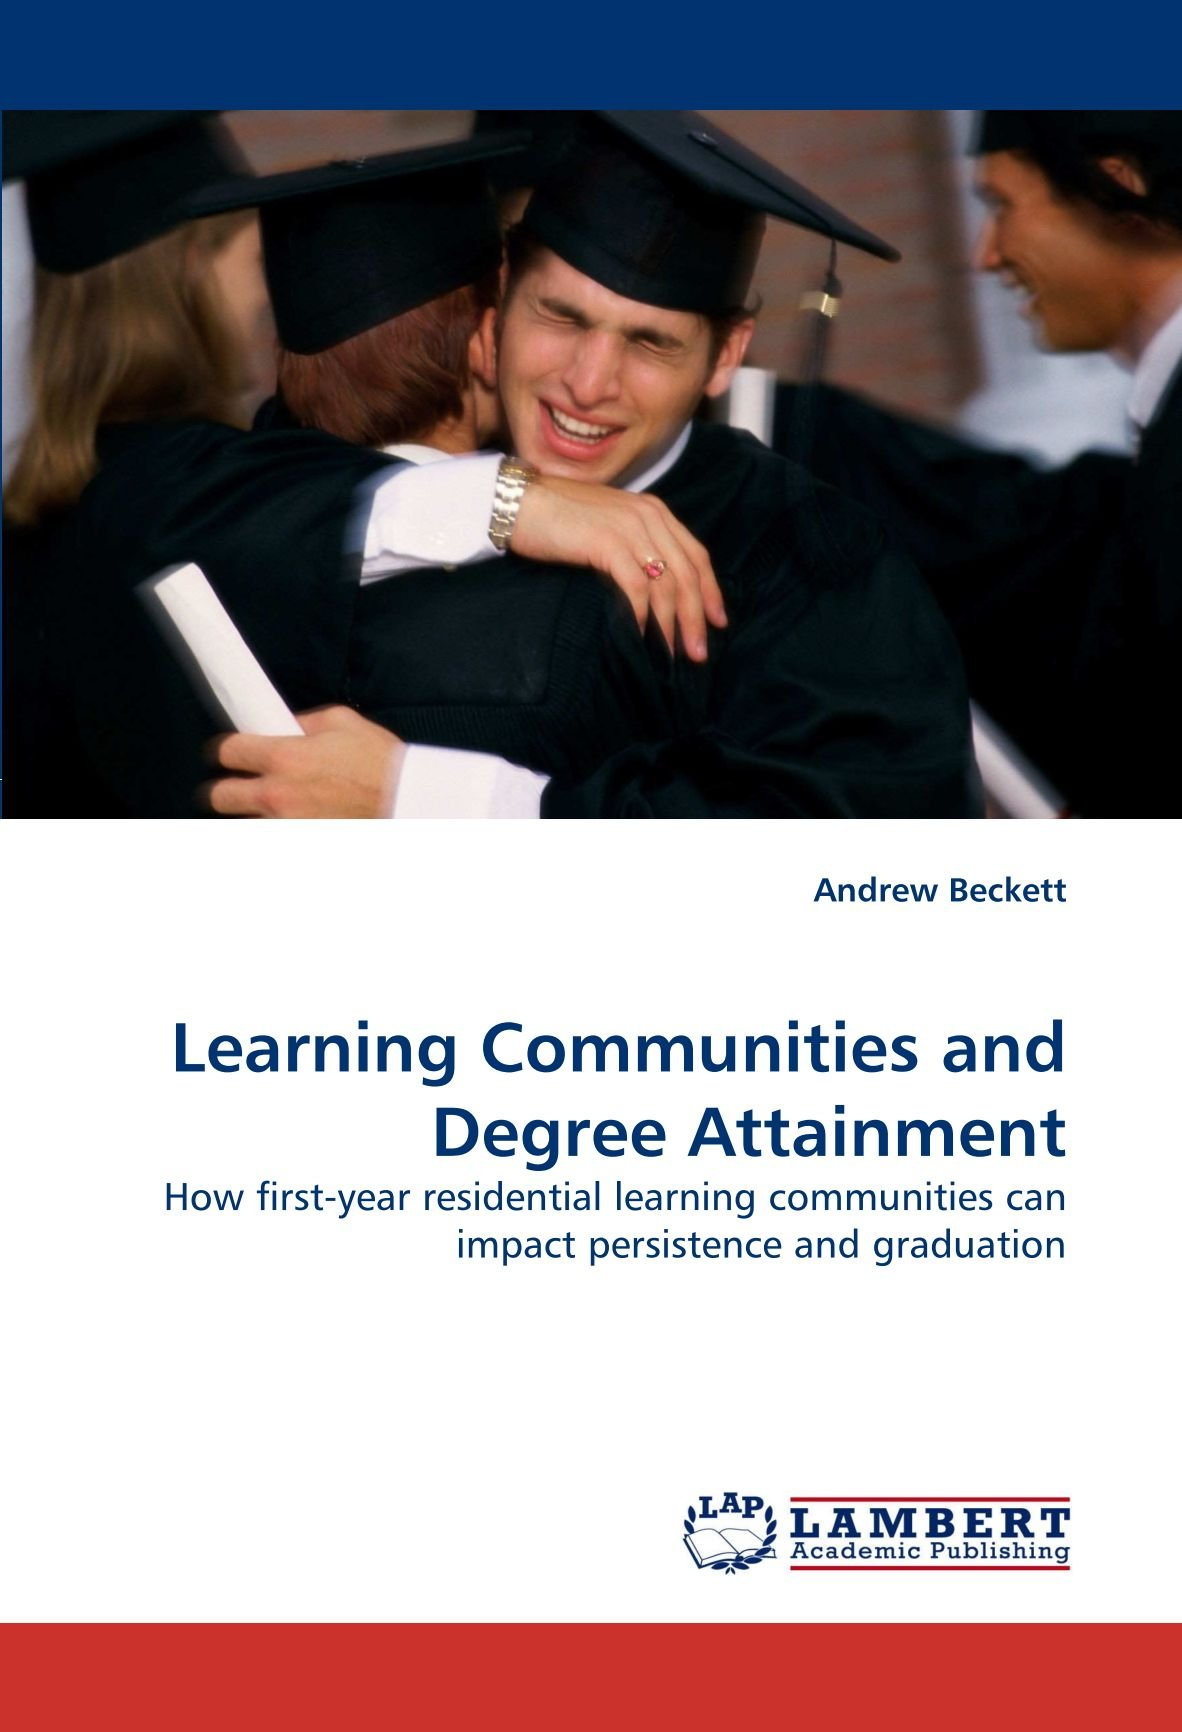 Download Learning Communities and Degree Attainment: How first-year residential learning communities can impact persistence and graduation ebook